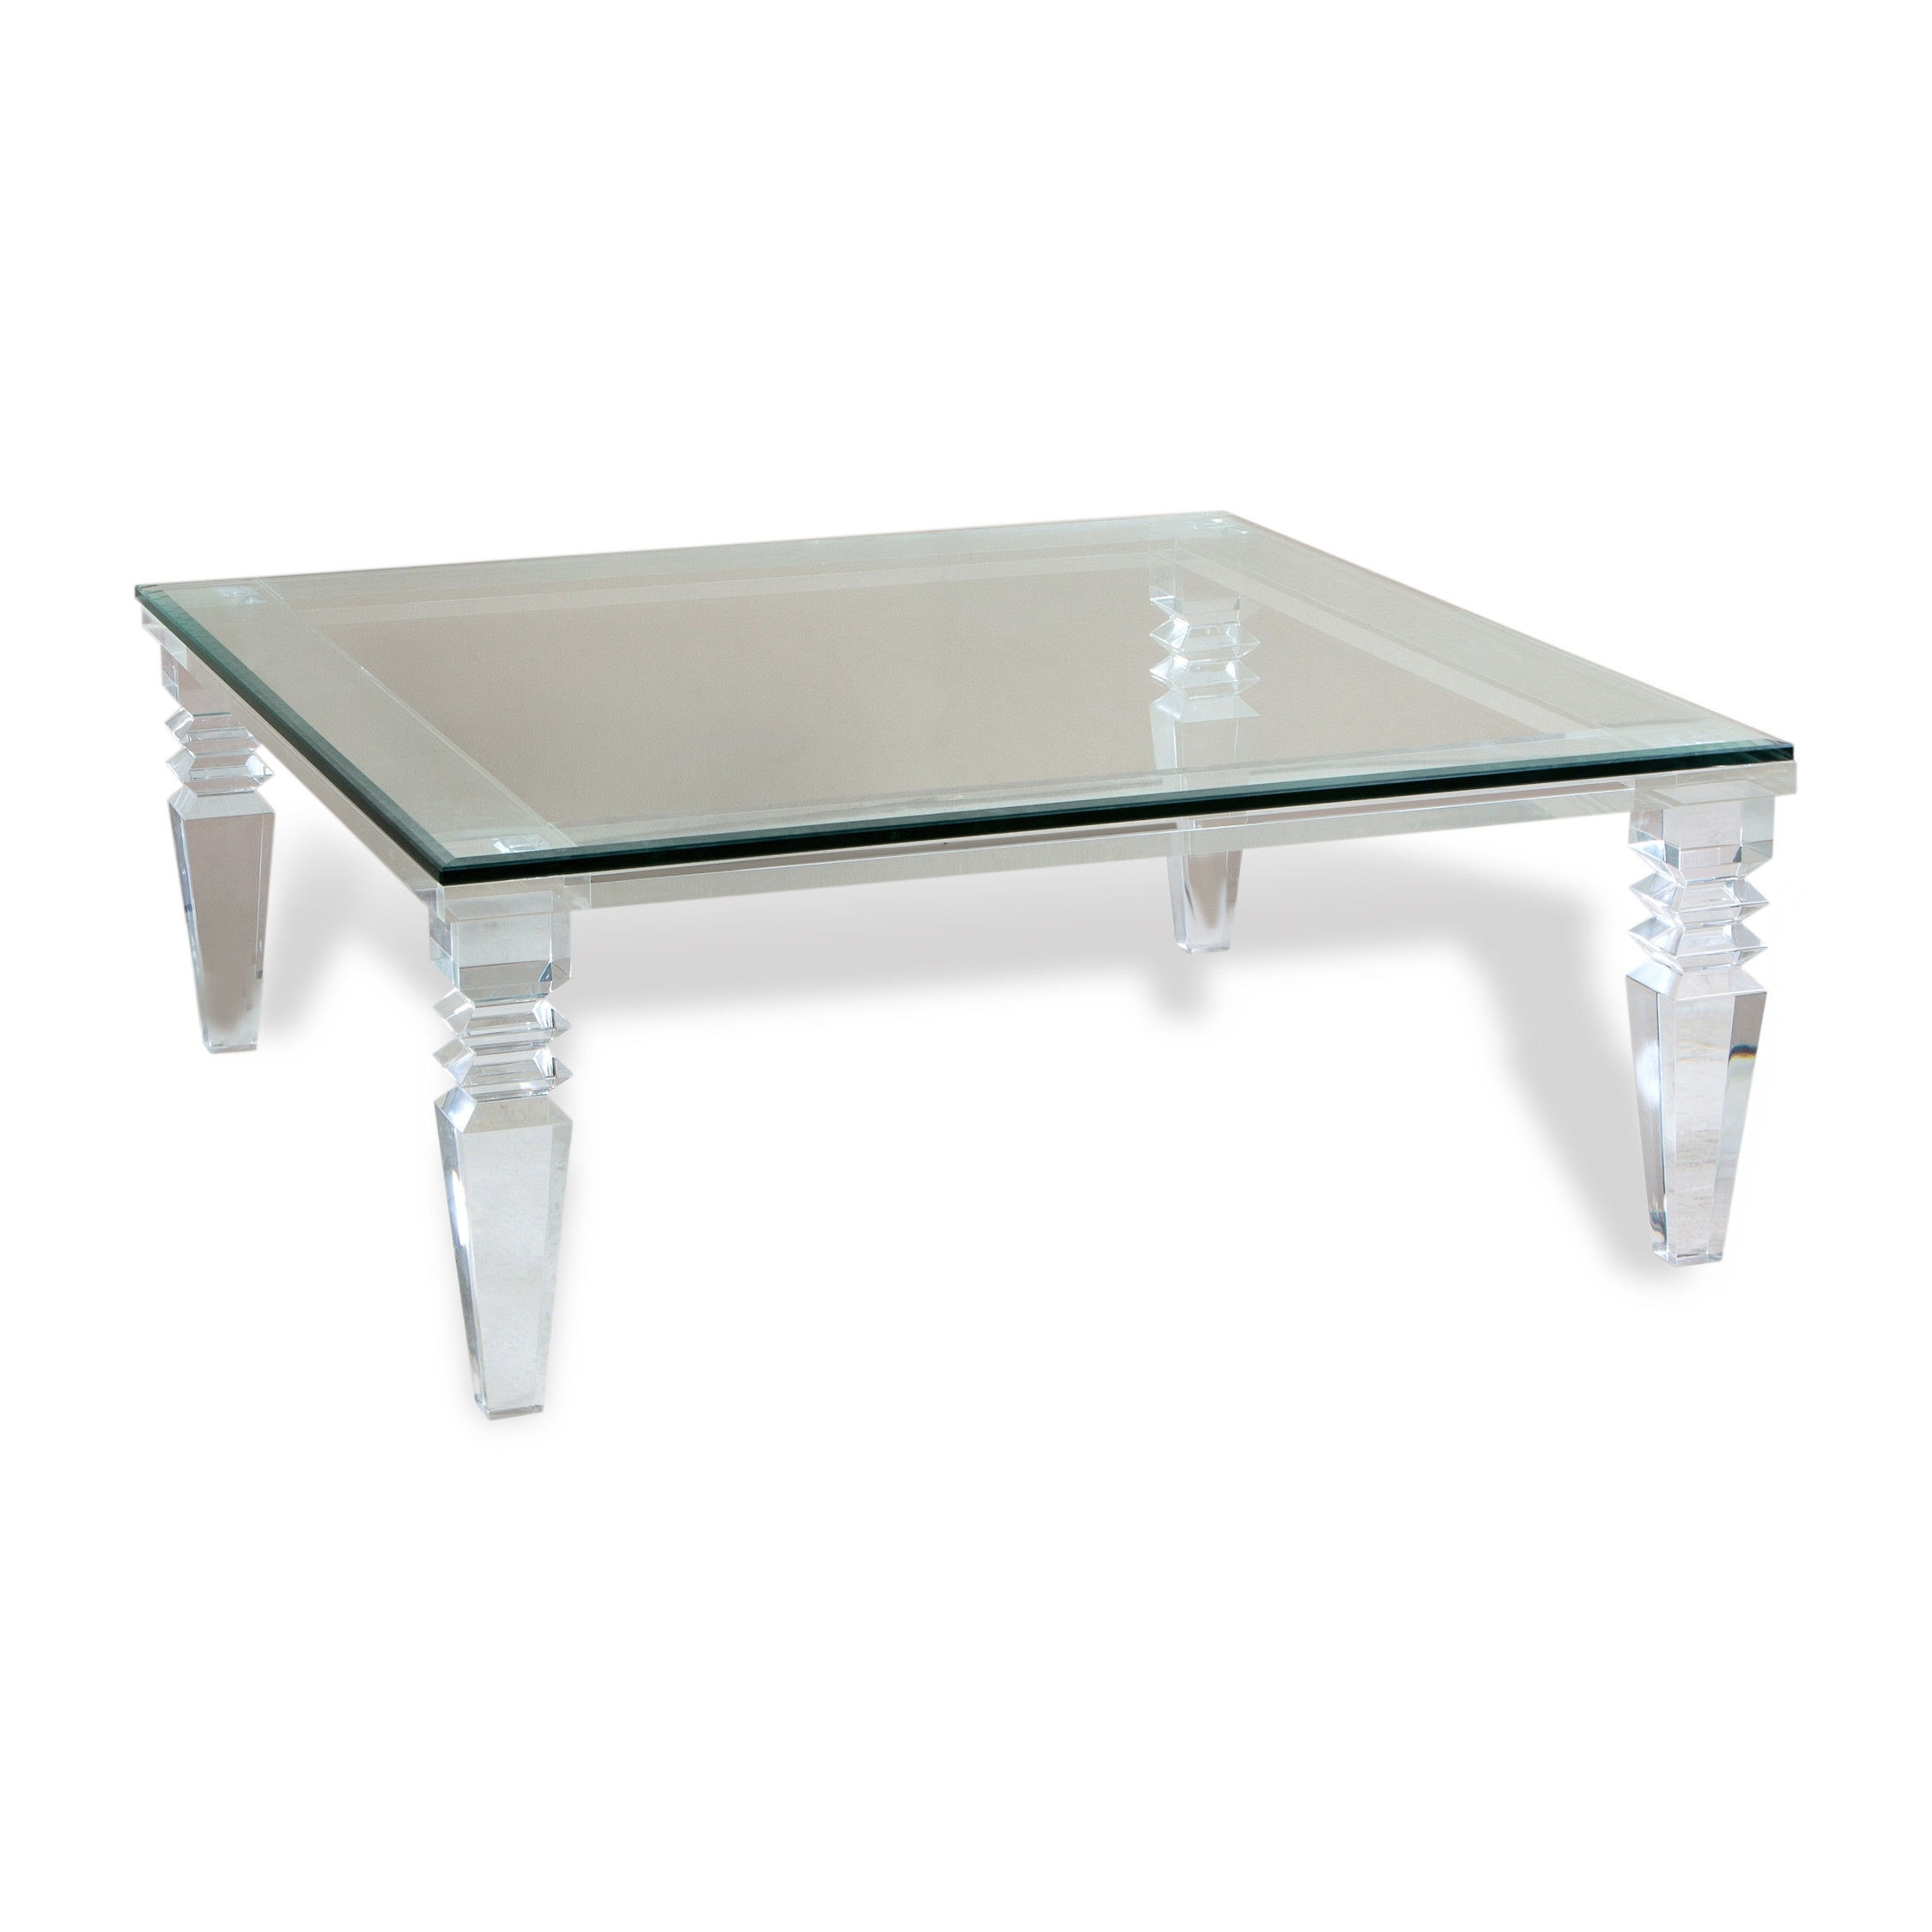 Acrylic Coffee Table For Sale Lovely Furniture Clear Glass Coffee throughout Peekaboo Acrylic Tall Coffee Tables (Image 12 of 30)